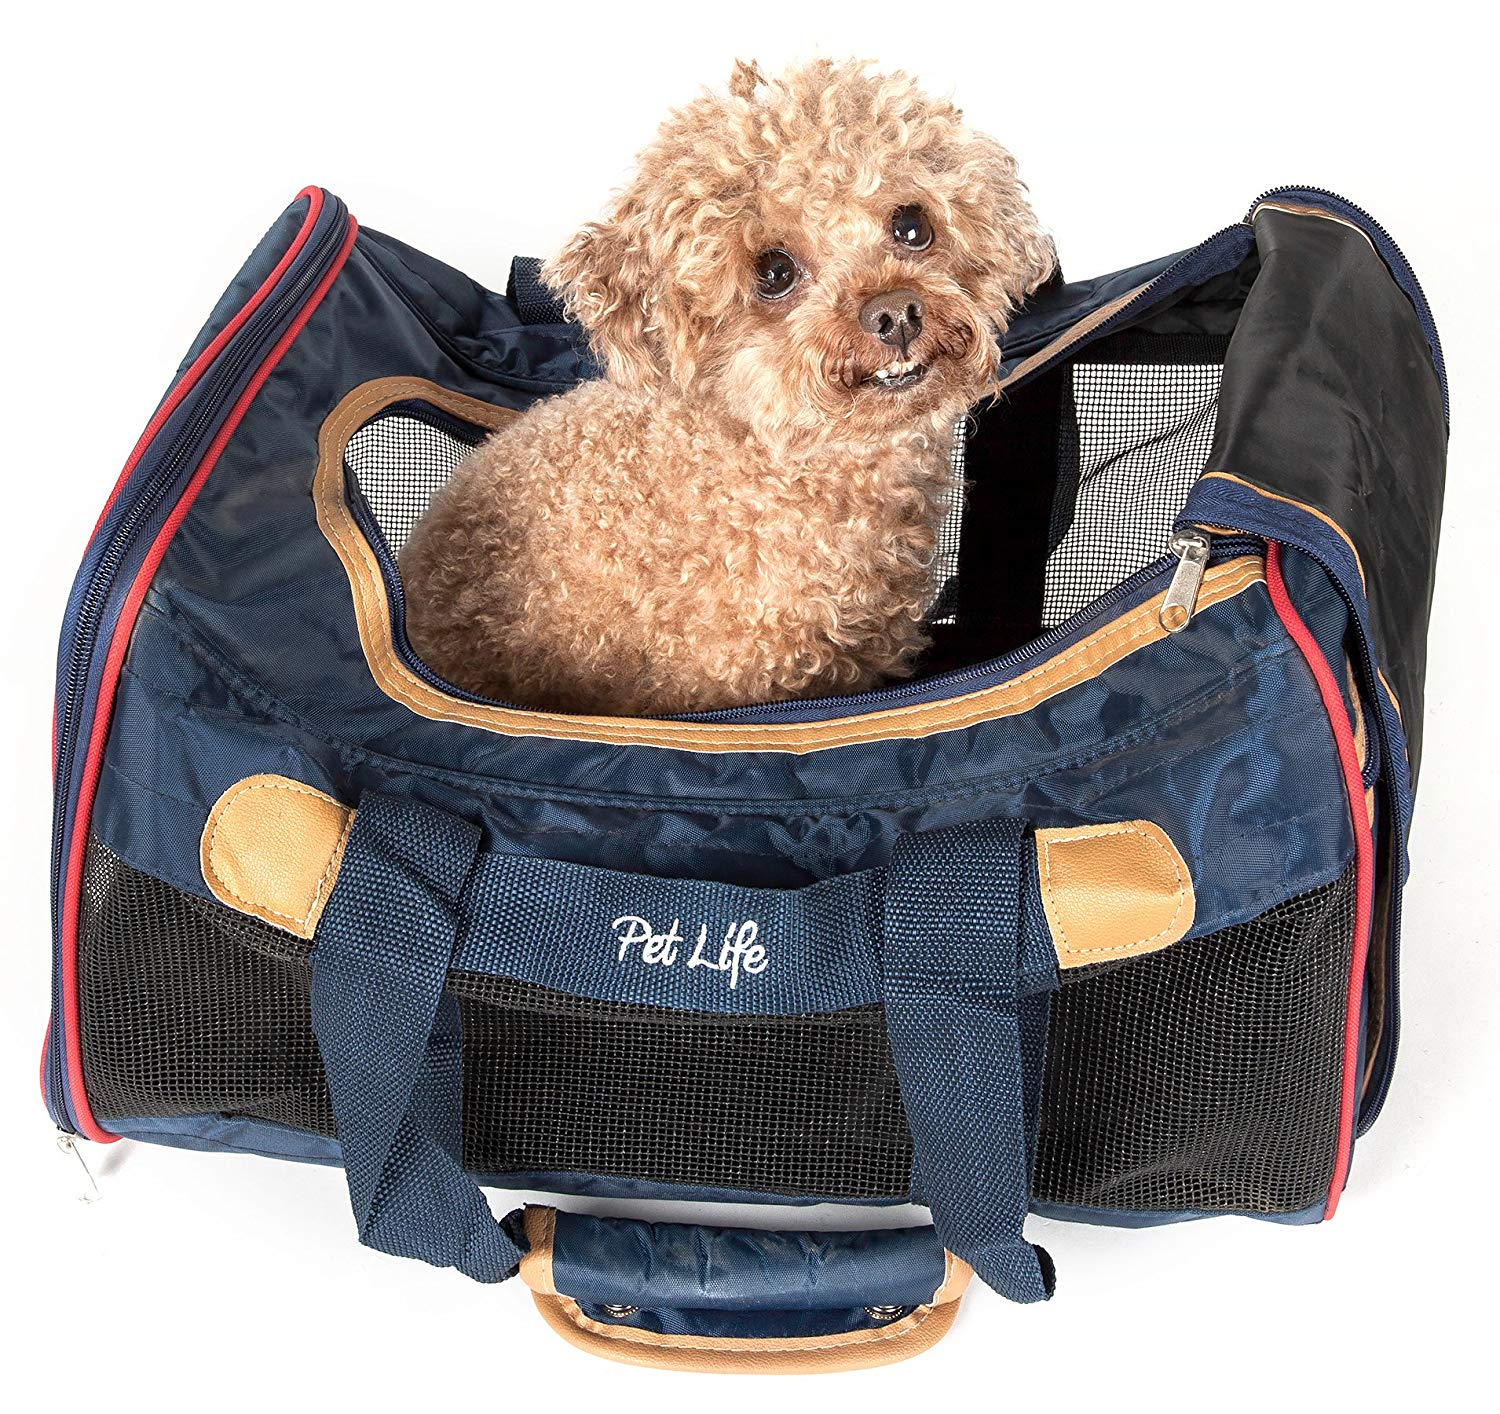 Pet Life Aero-Zoom' Airline Approved lightweight Wire Framed Folding Collapsible Fashion Pet Dog Carrier, Dark Blue